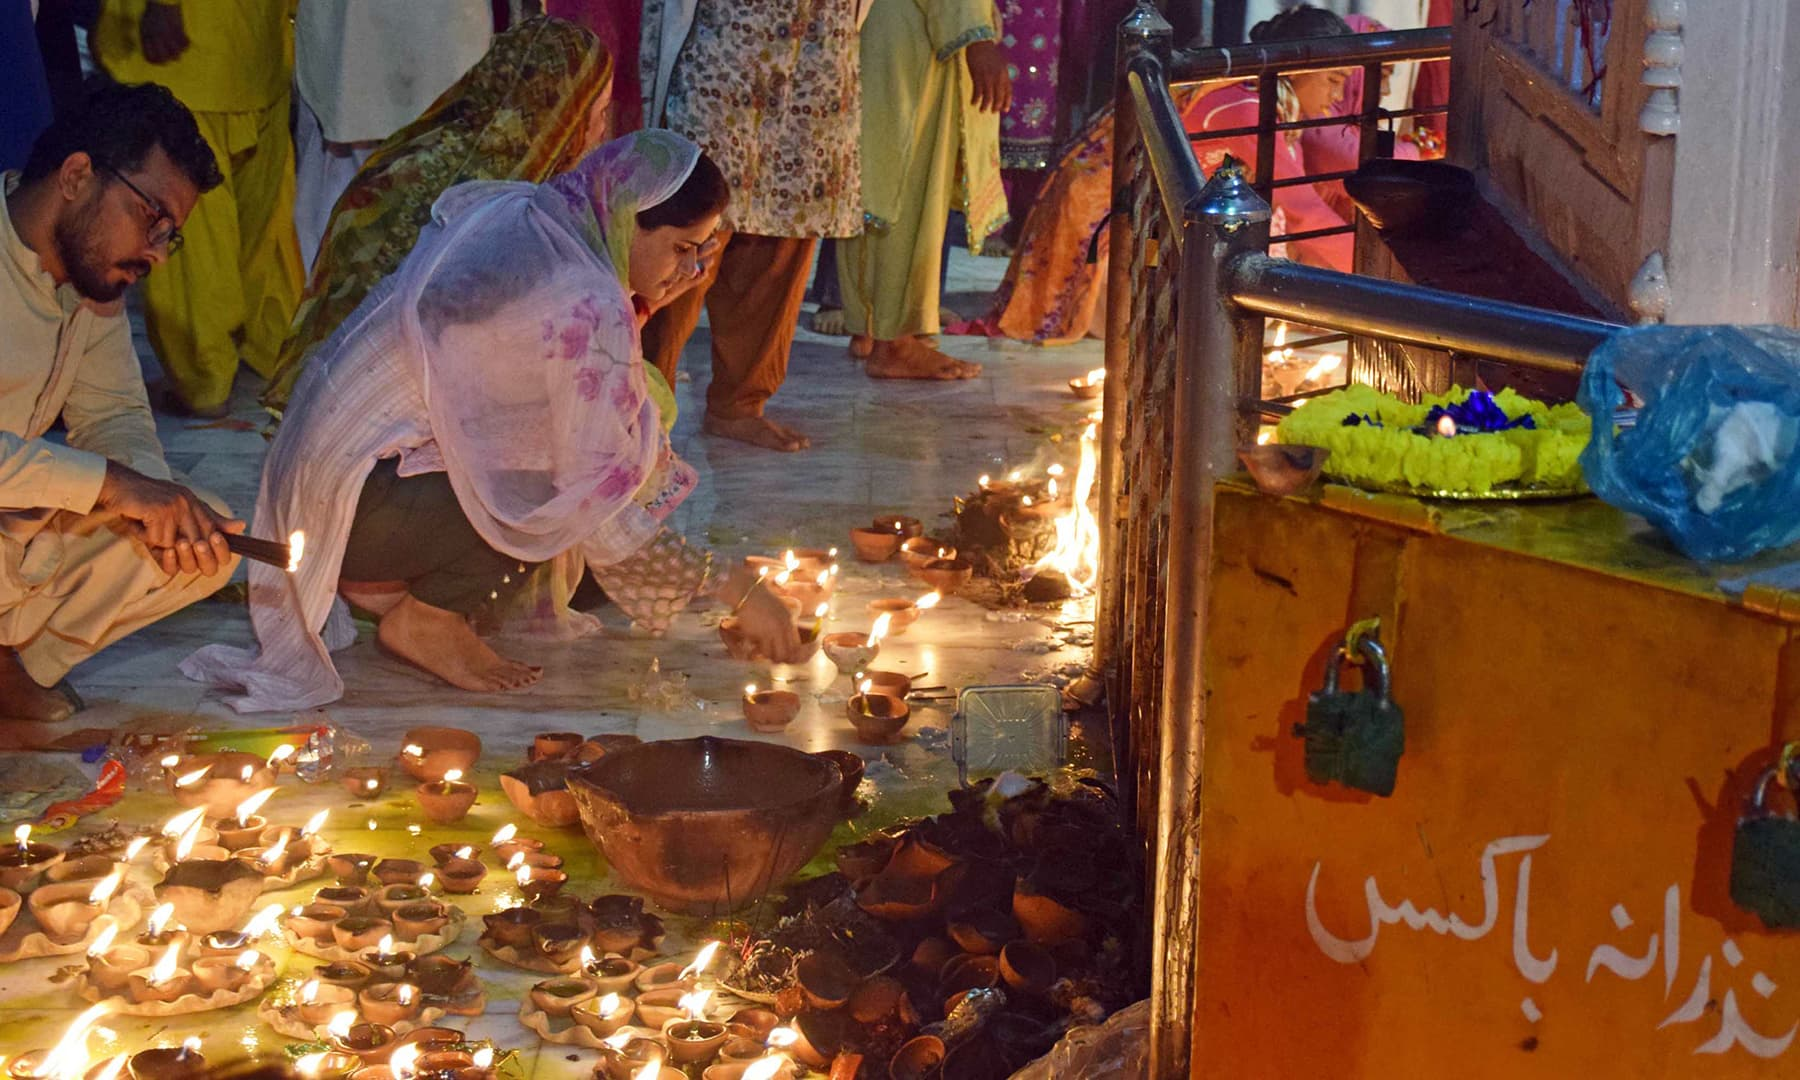 Women light earthen lamps for the prayers they are seeking from God. It is known as *mannat* in the spiritual order and only those can touch the lamps who have some desire or prayer to be fulfilled.